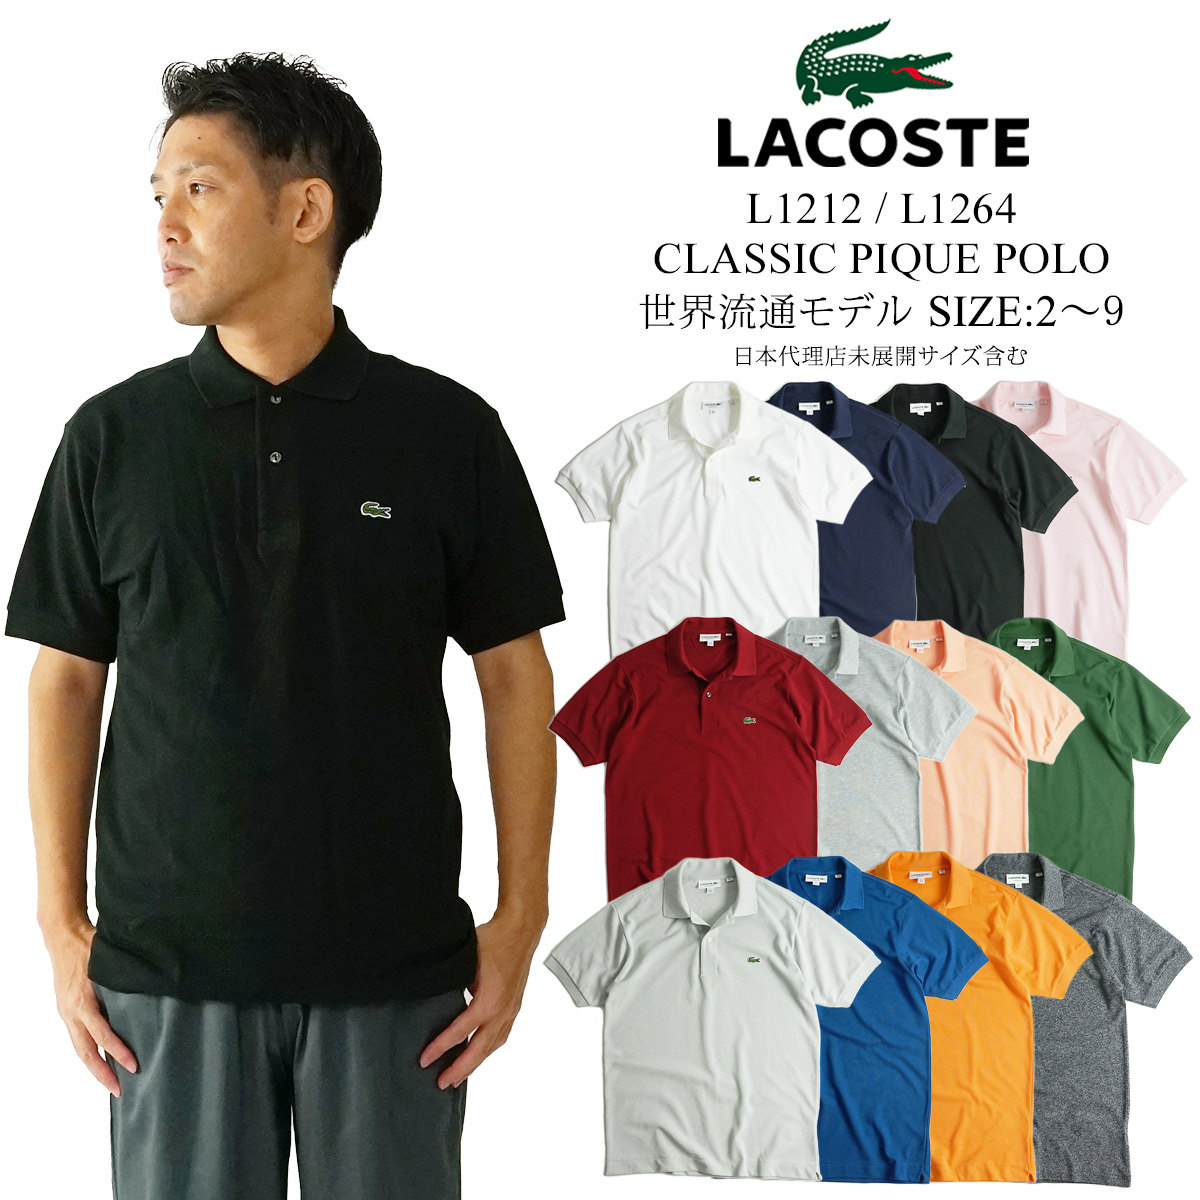 1f96ca65f8 Lacoste LACOSTE L1212/L1264 short sleeves polo shirt fawn world circulation  model (Classic Pique ...